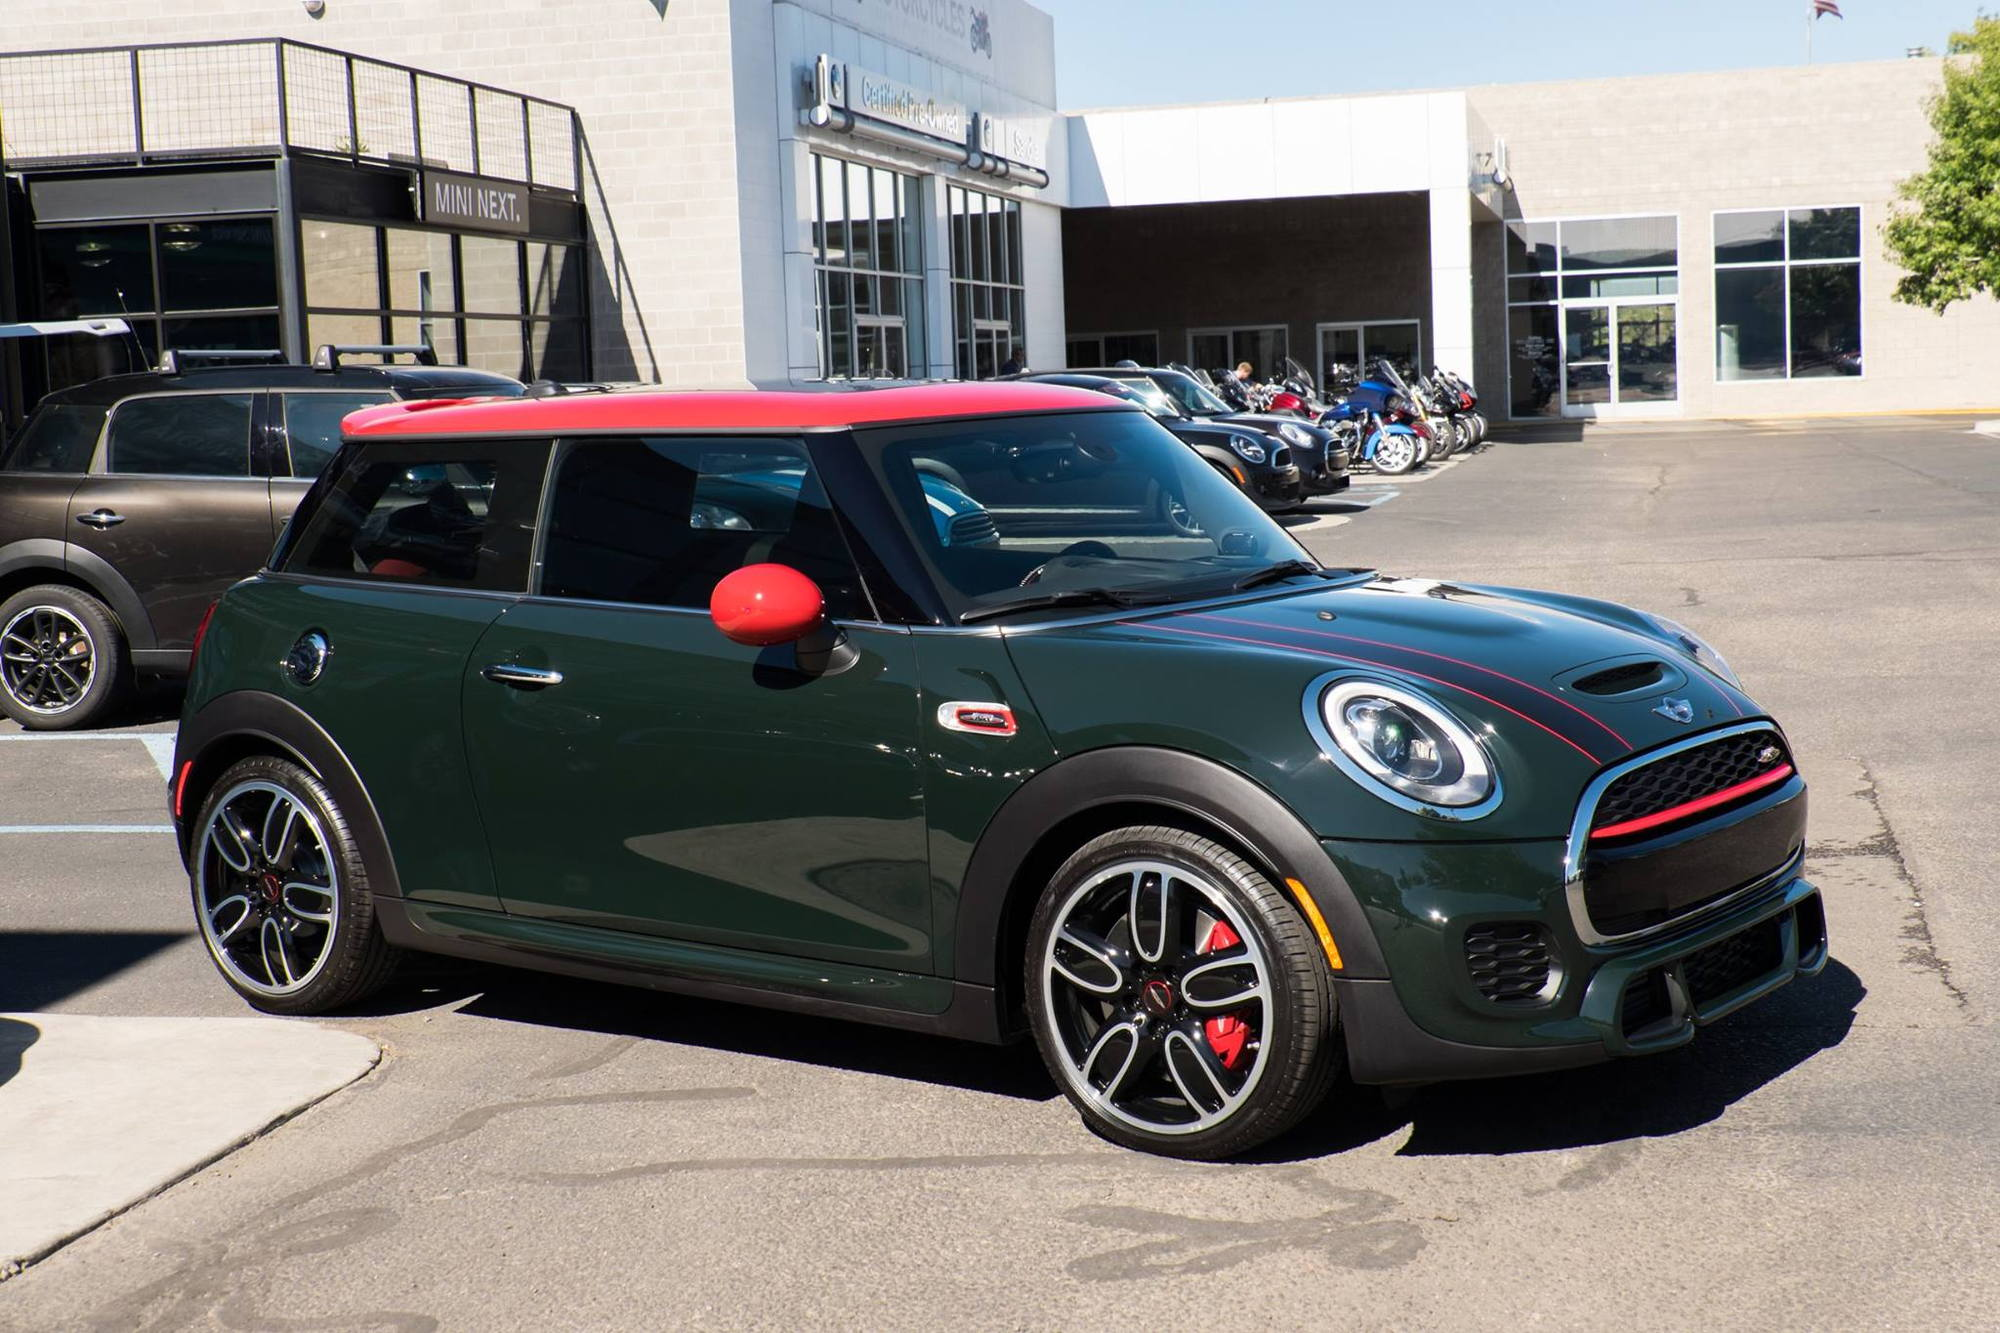 My 2016 Rebel Green Jcw F56 6mt With Pictures North American